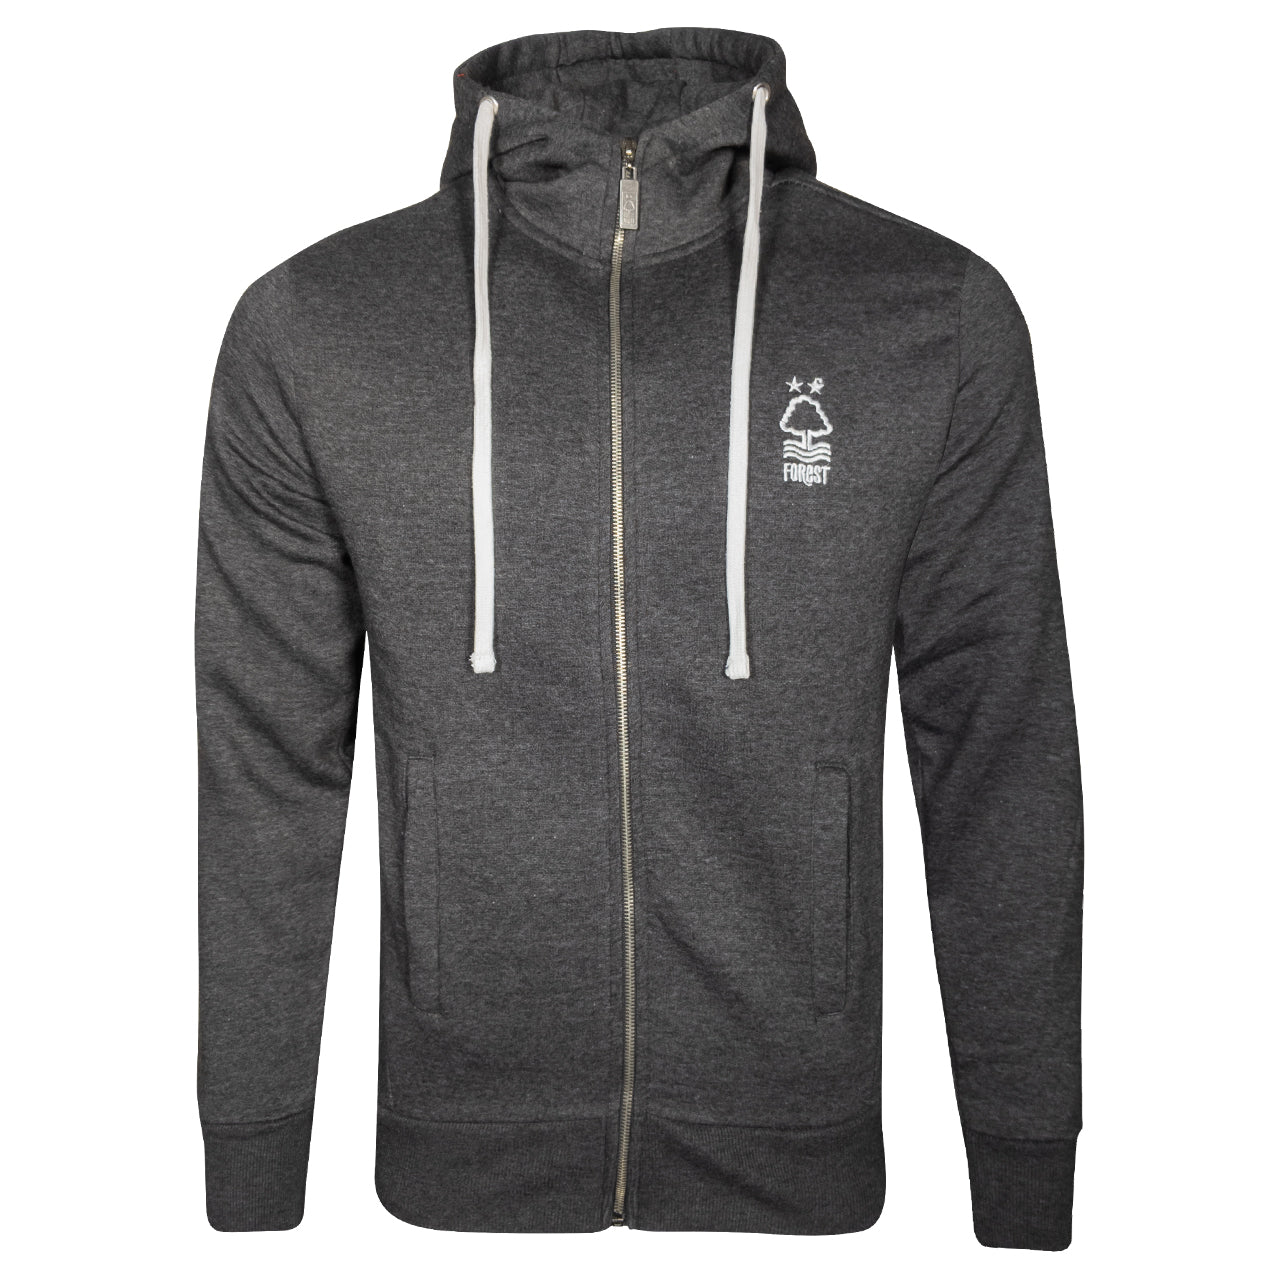 NFFC Mens Black Marl Essential Zip Hoodie